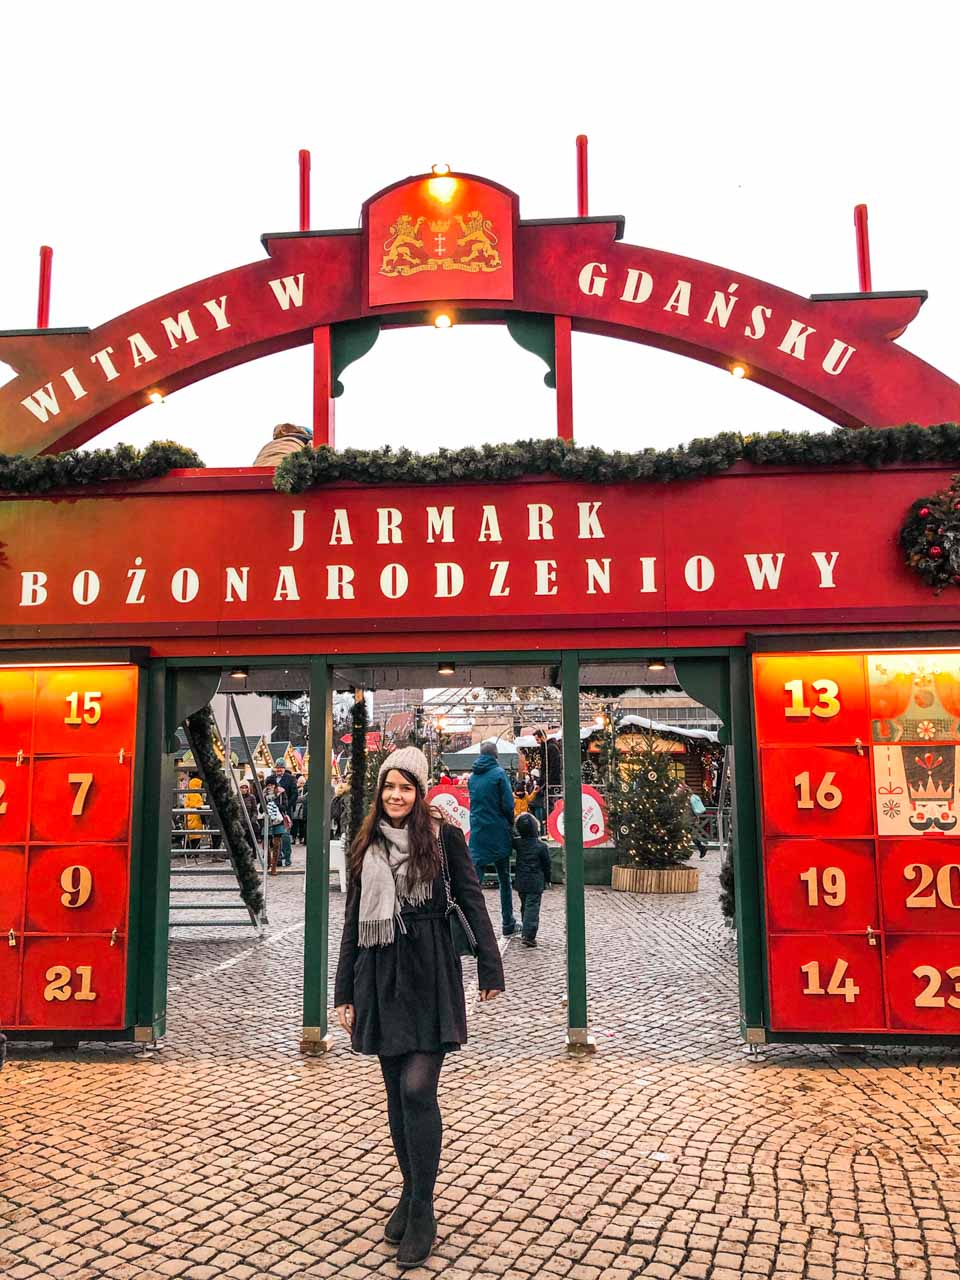 A girl standing in front of the Advent Gate at the Christmas market in Gdańsk